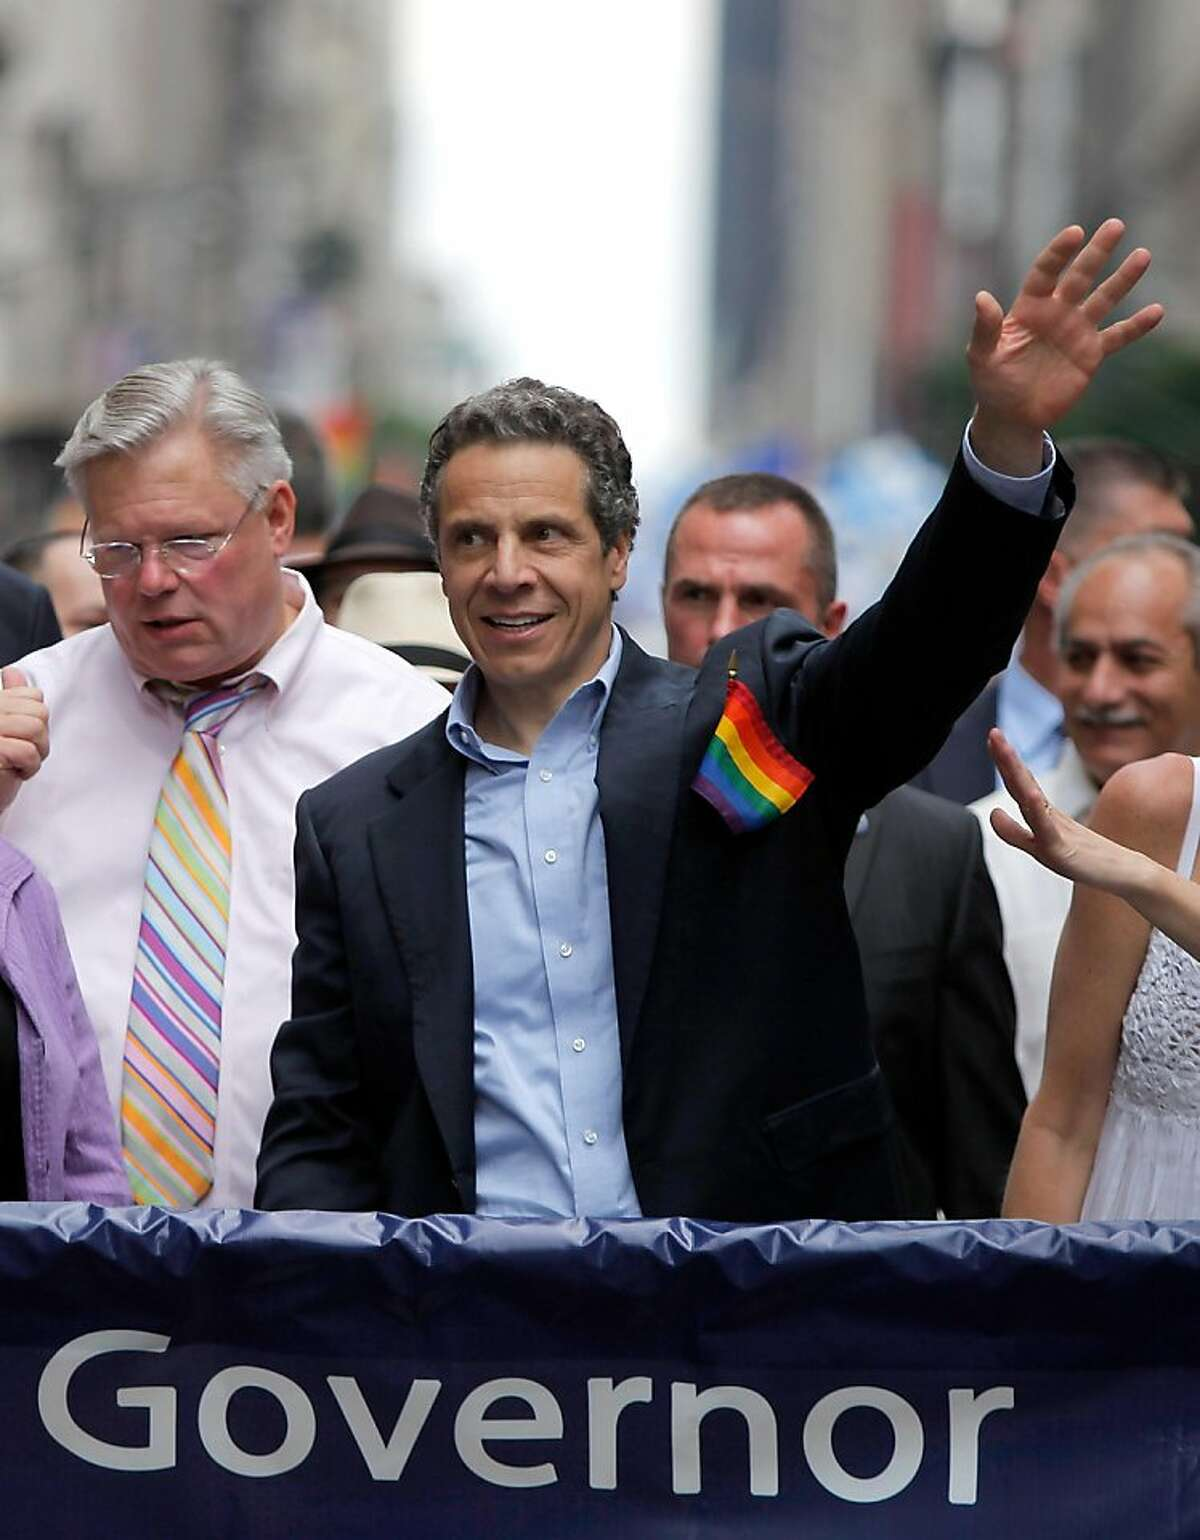 NEW YORK, NY - JUNE 26: New York Governor Mario Cuomo marches during the 2011 NYC LGBT Pride March on the streets of Manhattan on June 26, 2011 in New York City. Thousands of revelers also had reason to celebrate since New York state legislators approveda bill legalizing same-sex marriage which Governor Cuomo signed in to law on Friday June 24.